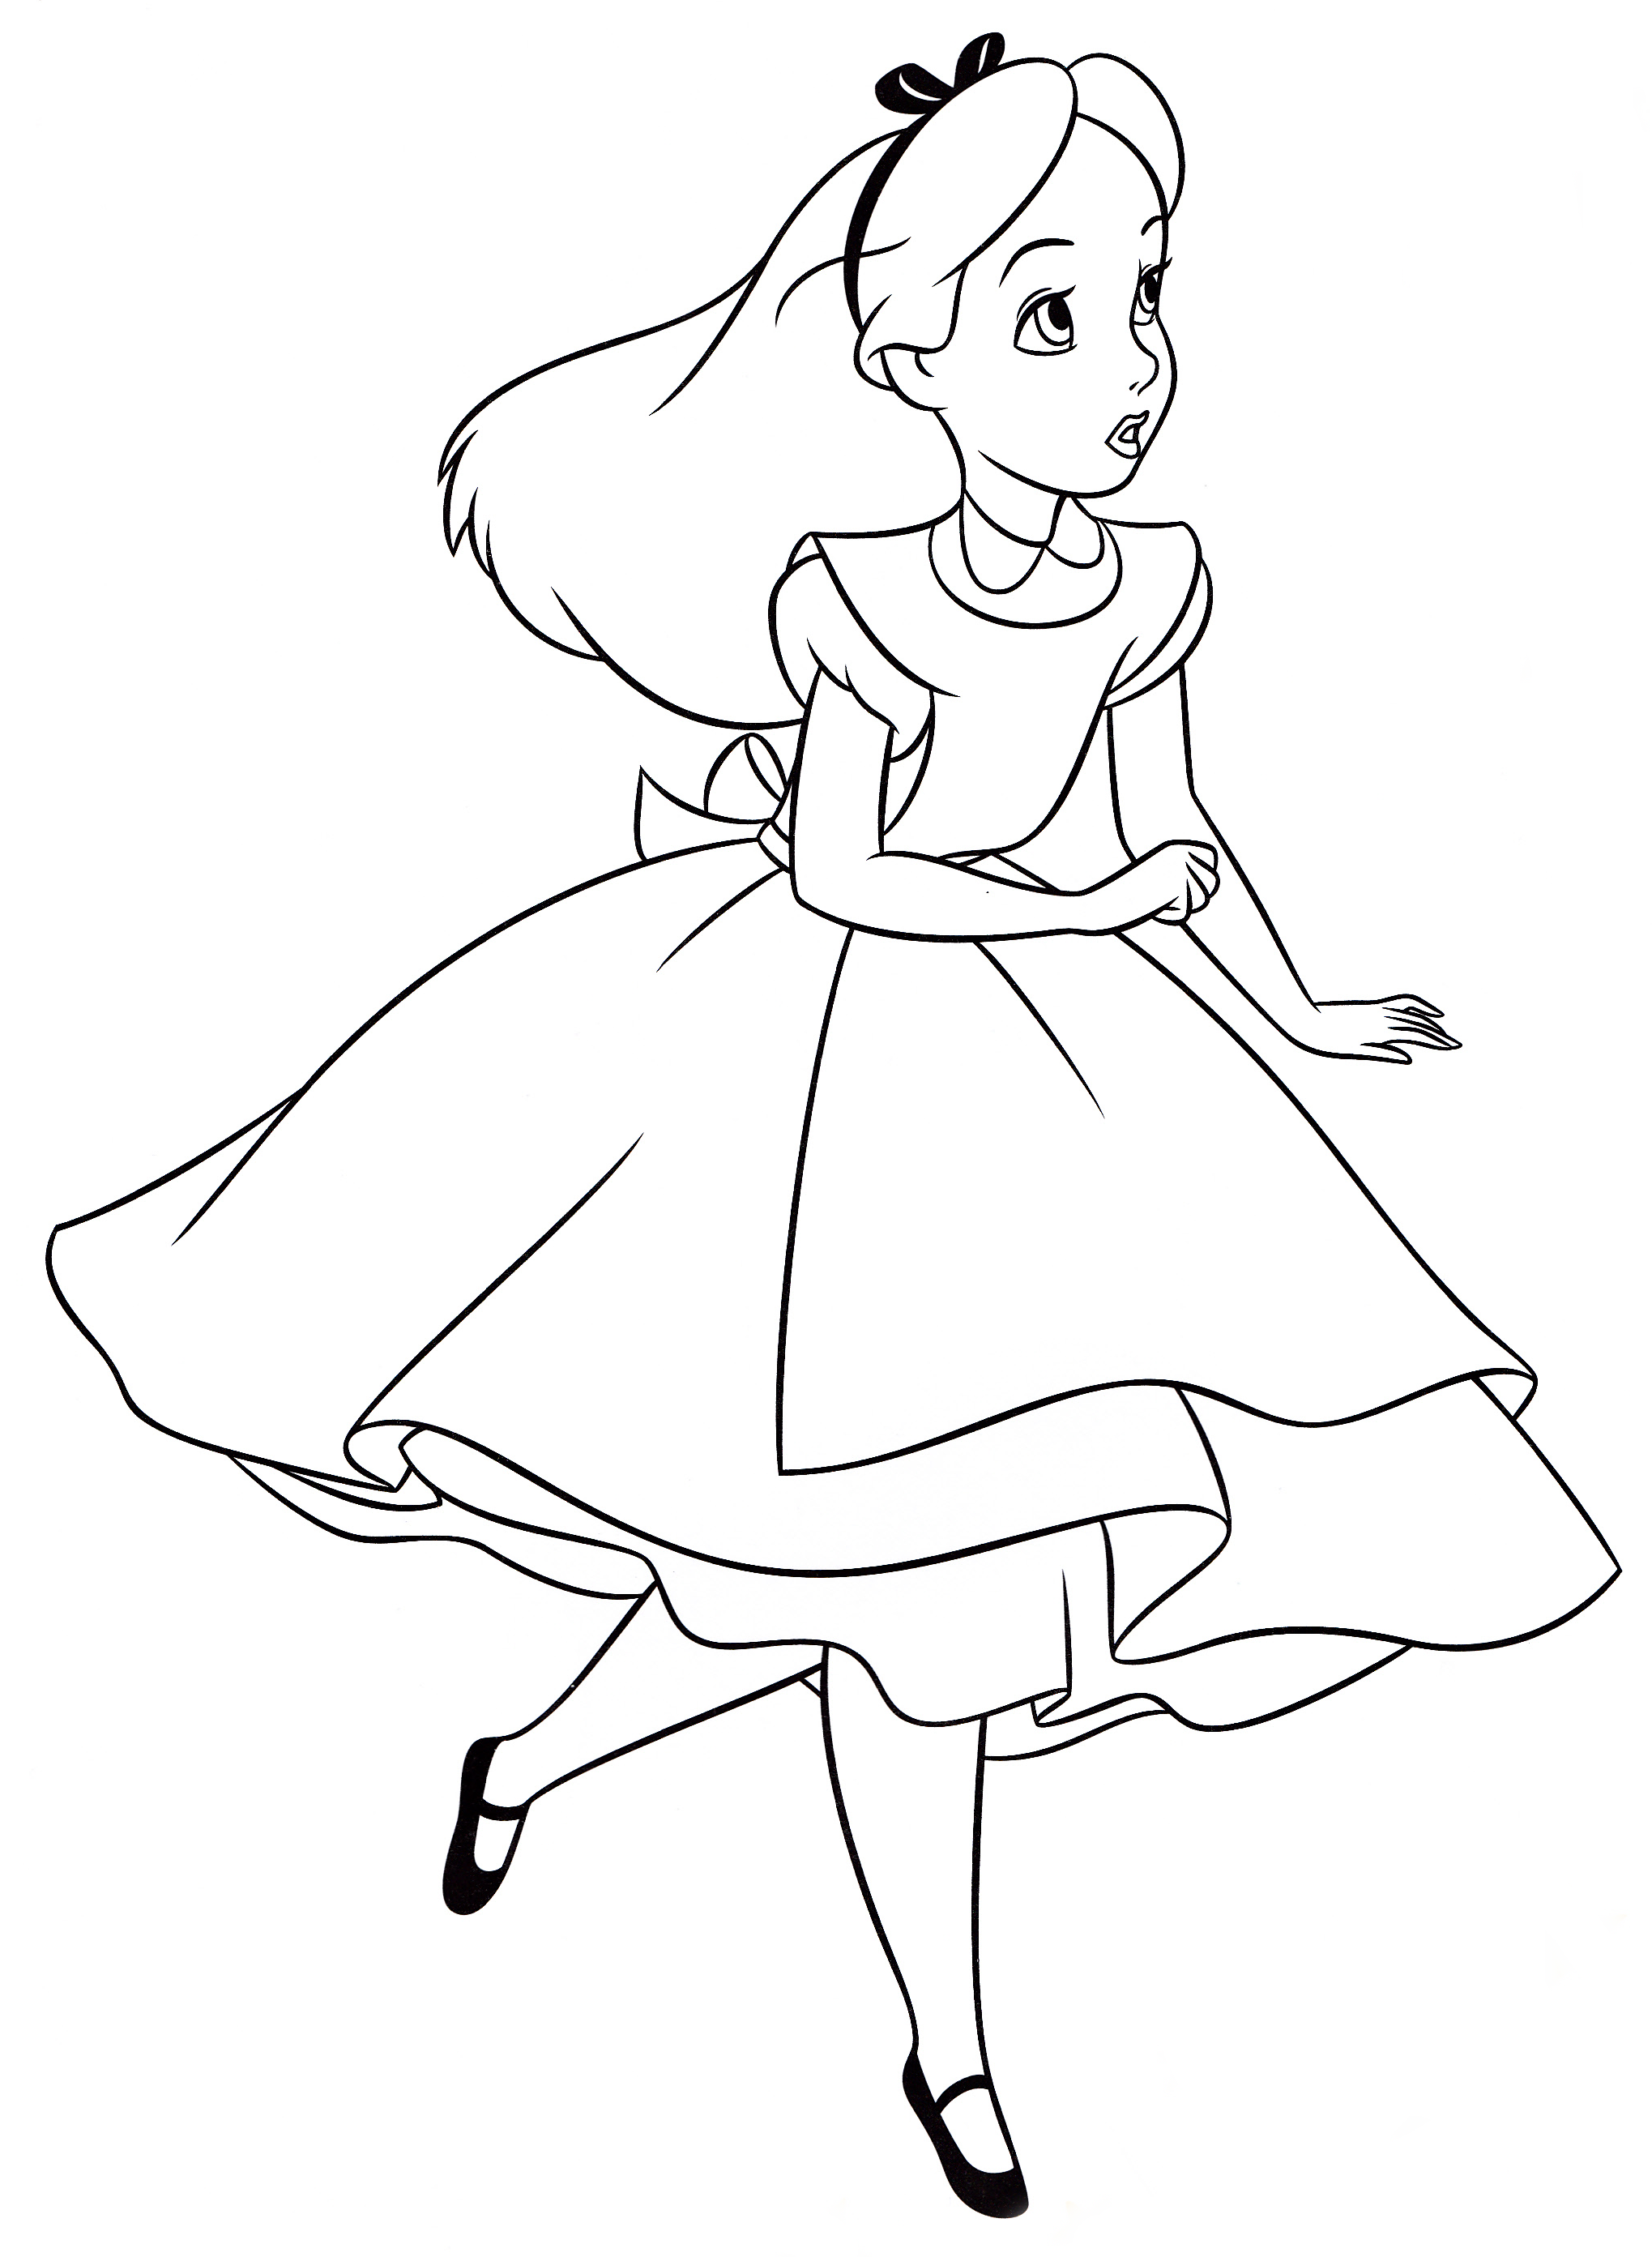 Walt डिज़्नी Coloring Pages - Alice